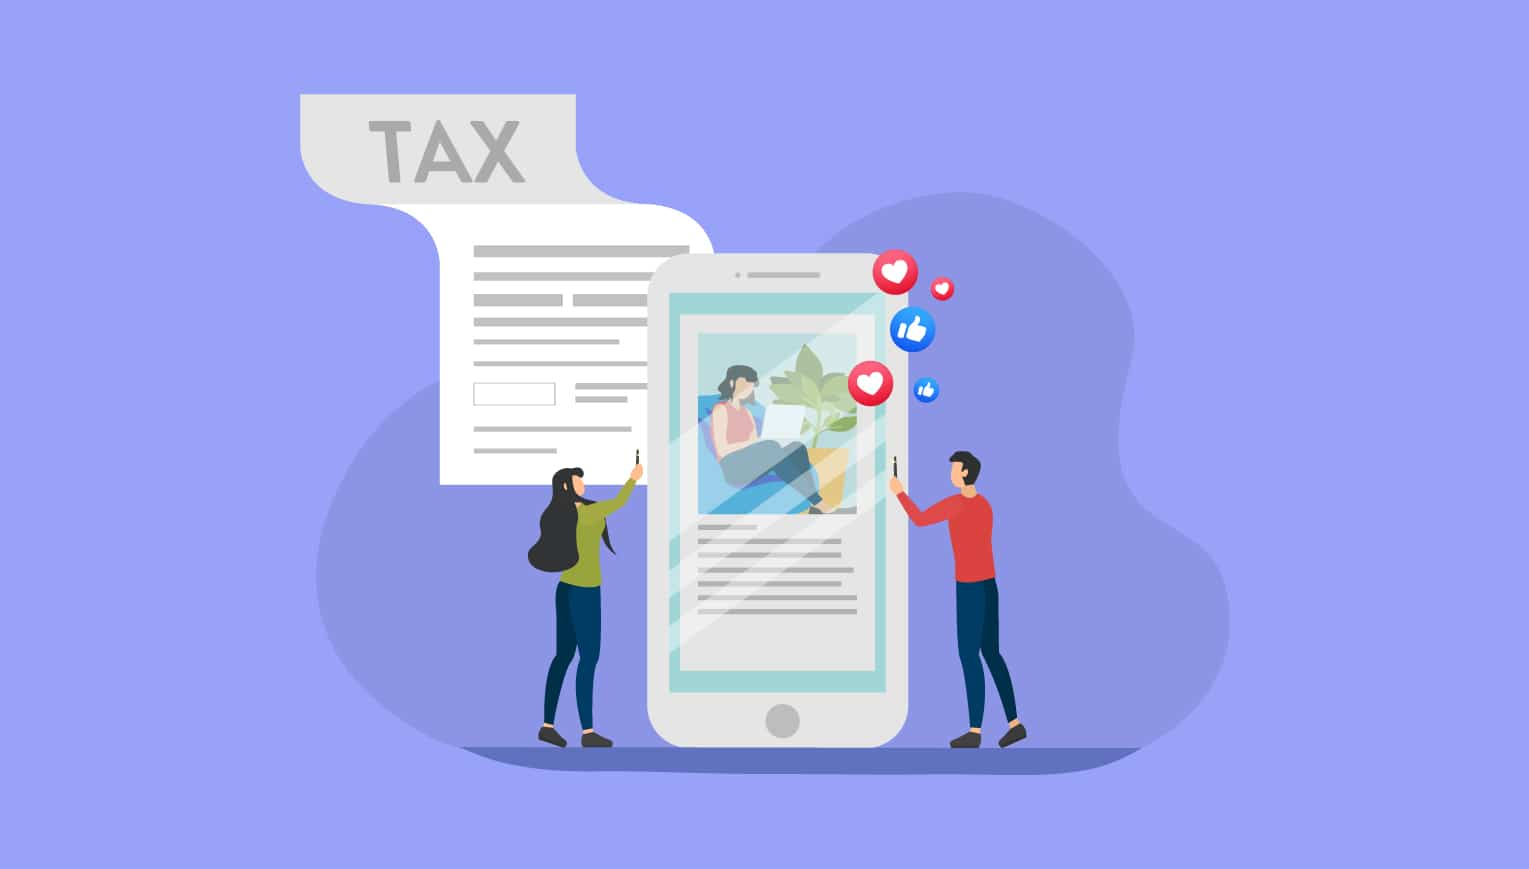 BIR Compliance and Social Media Marketing in the Philippines: Tax Matters for Companies and Influencers!